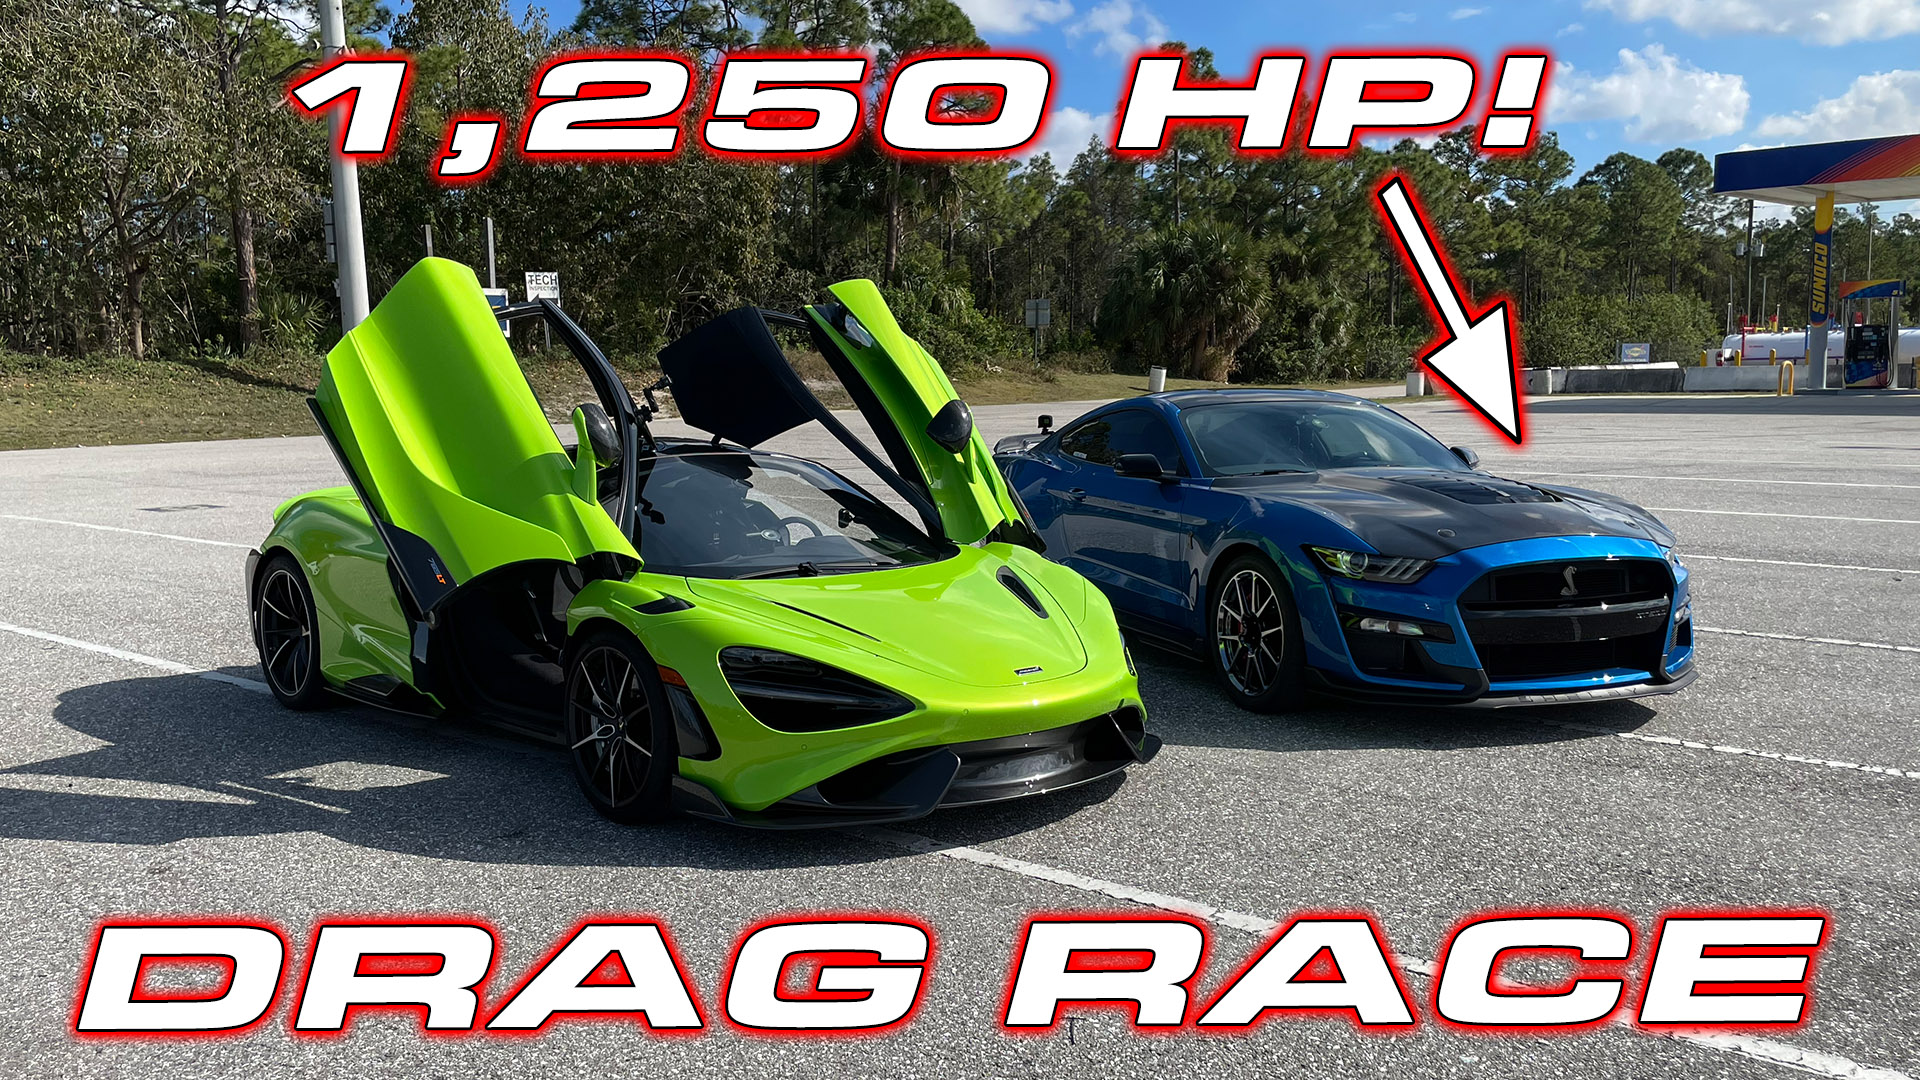 McLaren 765LT takes on 1,250HP Shelby GT500